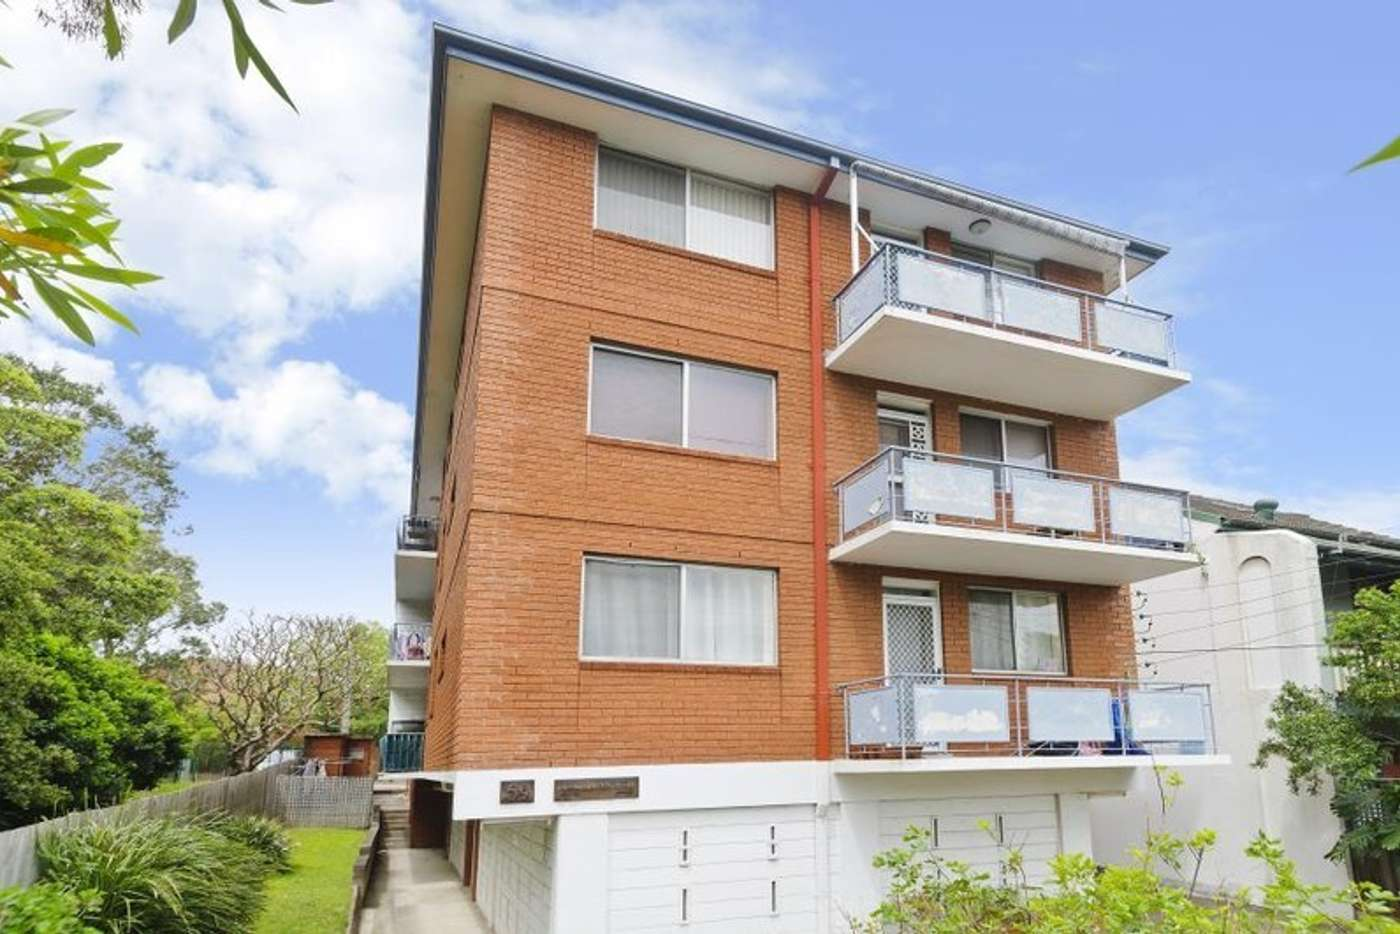 Main view of Homely apartment listing, 9/59 Tebbutt Street, Leichhardt NSW 2040